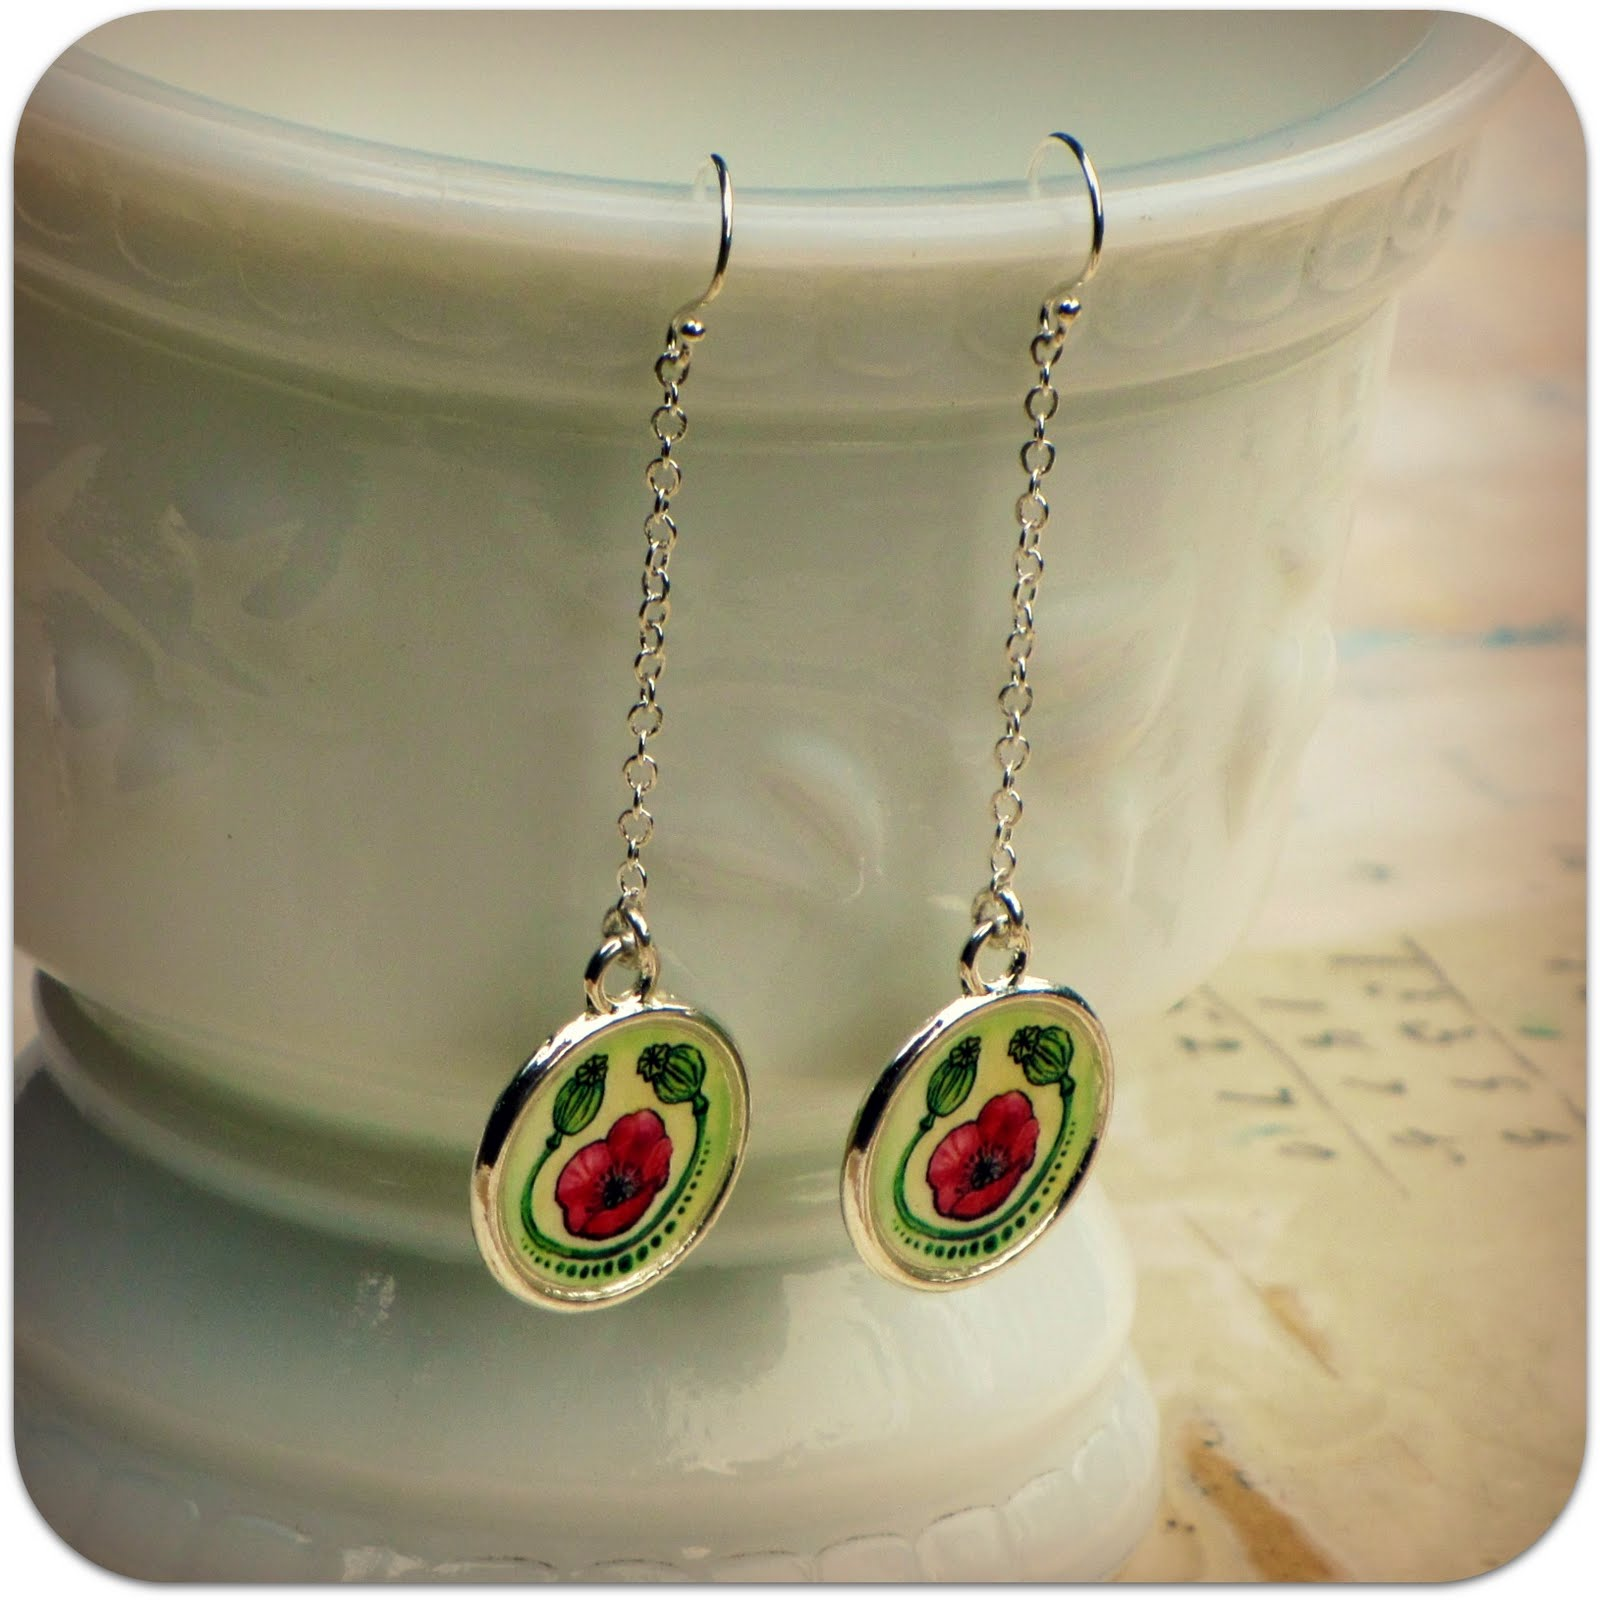 Sweet Mess: poppy earrings & folk pattern earrings